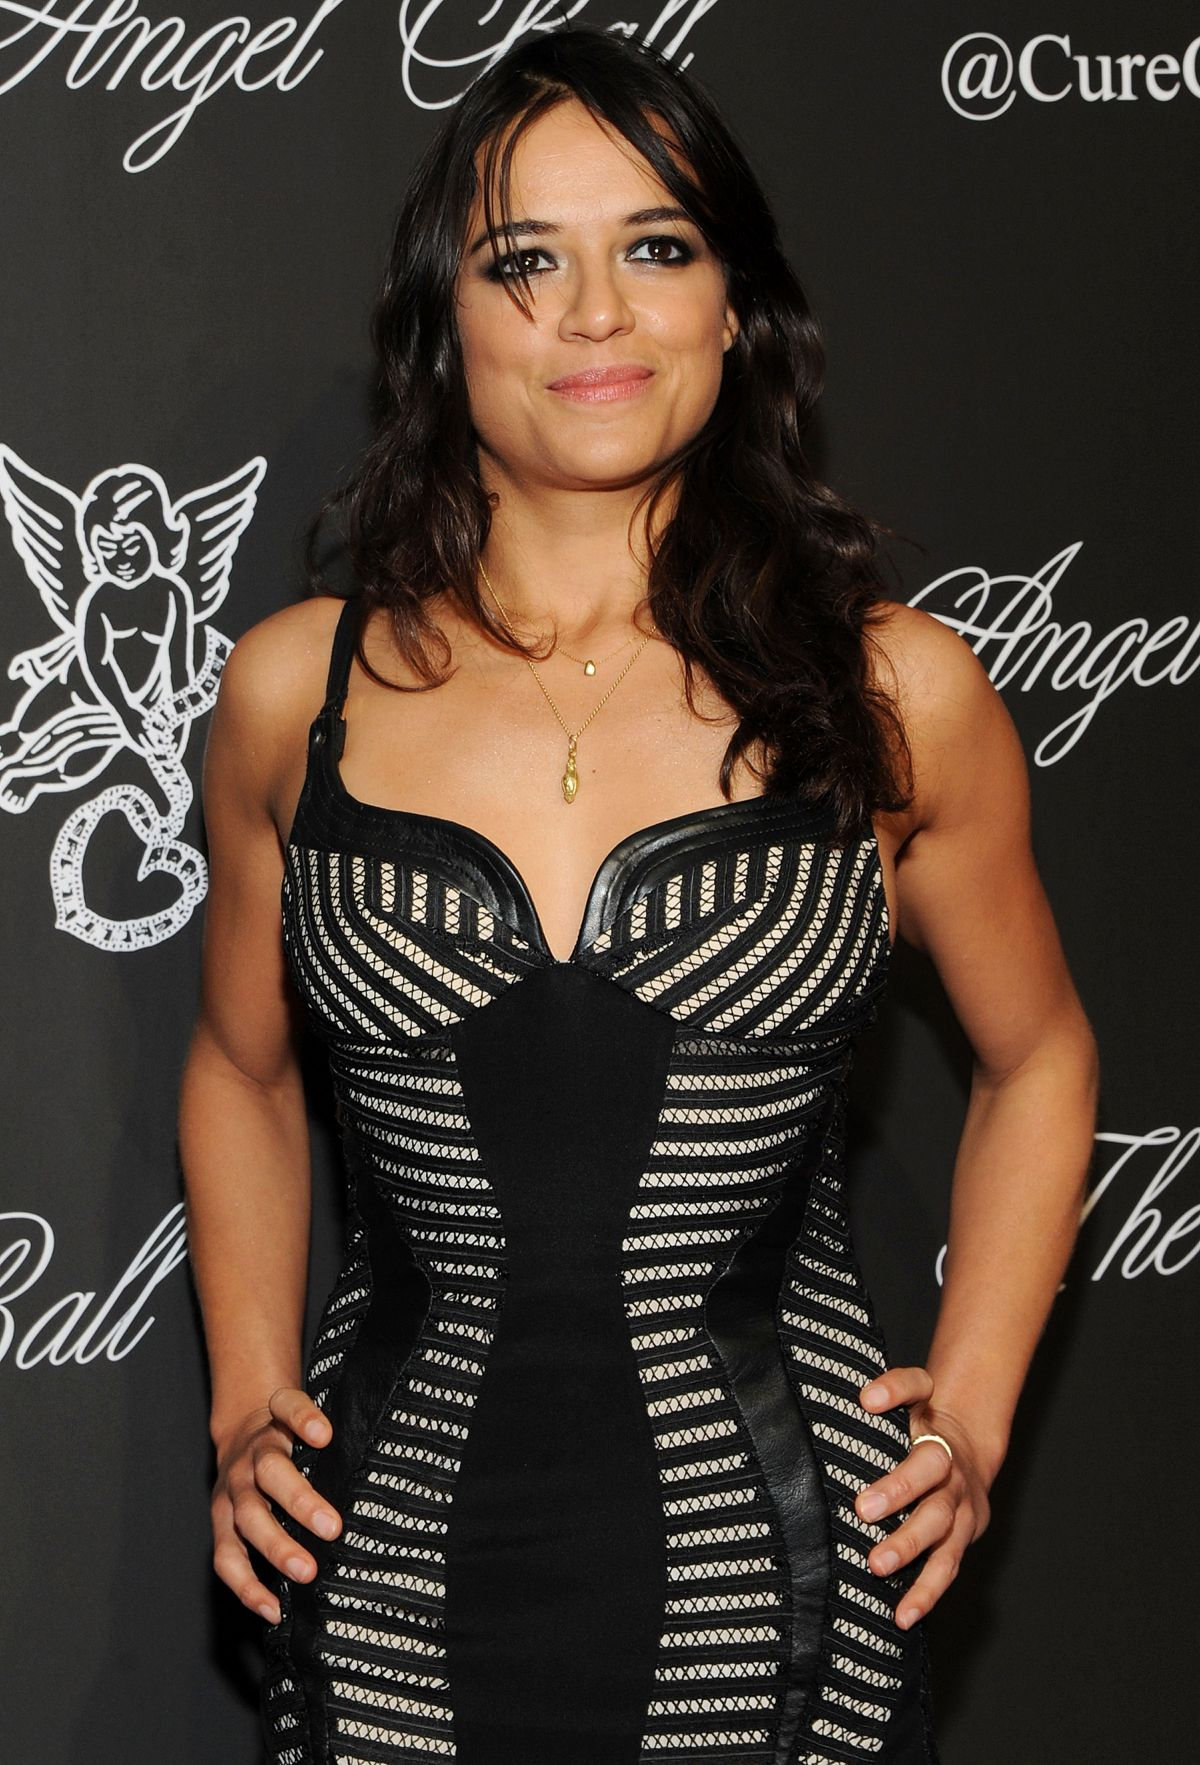 MICHELLE RODRIGUEZ at Angel Ball 2014 in New York